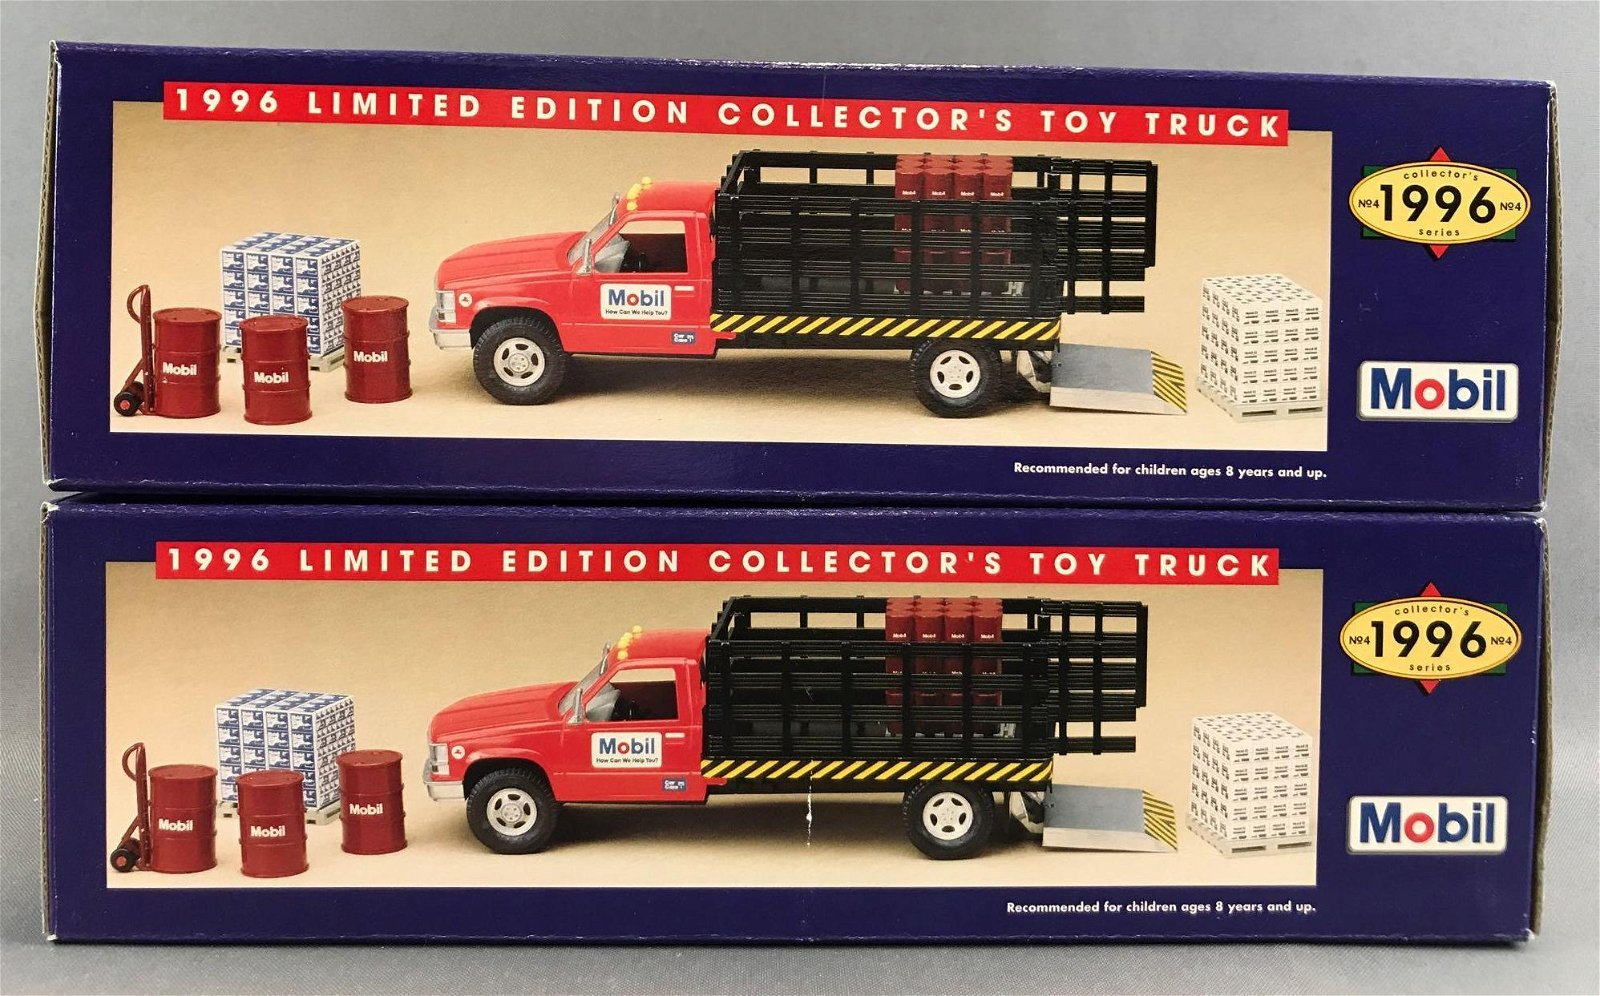 Group of 2 1996 Mobil Limited Edition Collectors Toy